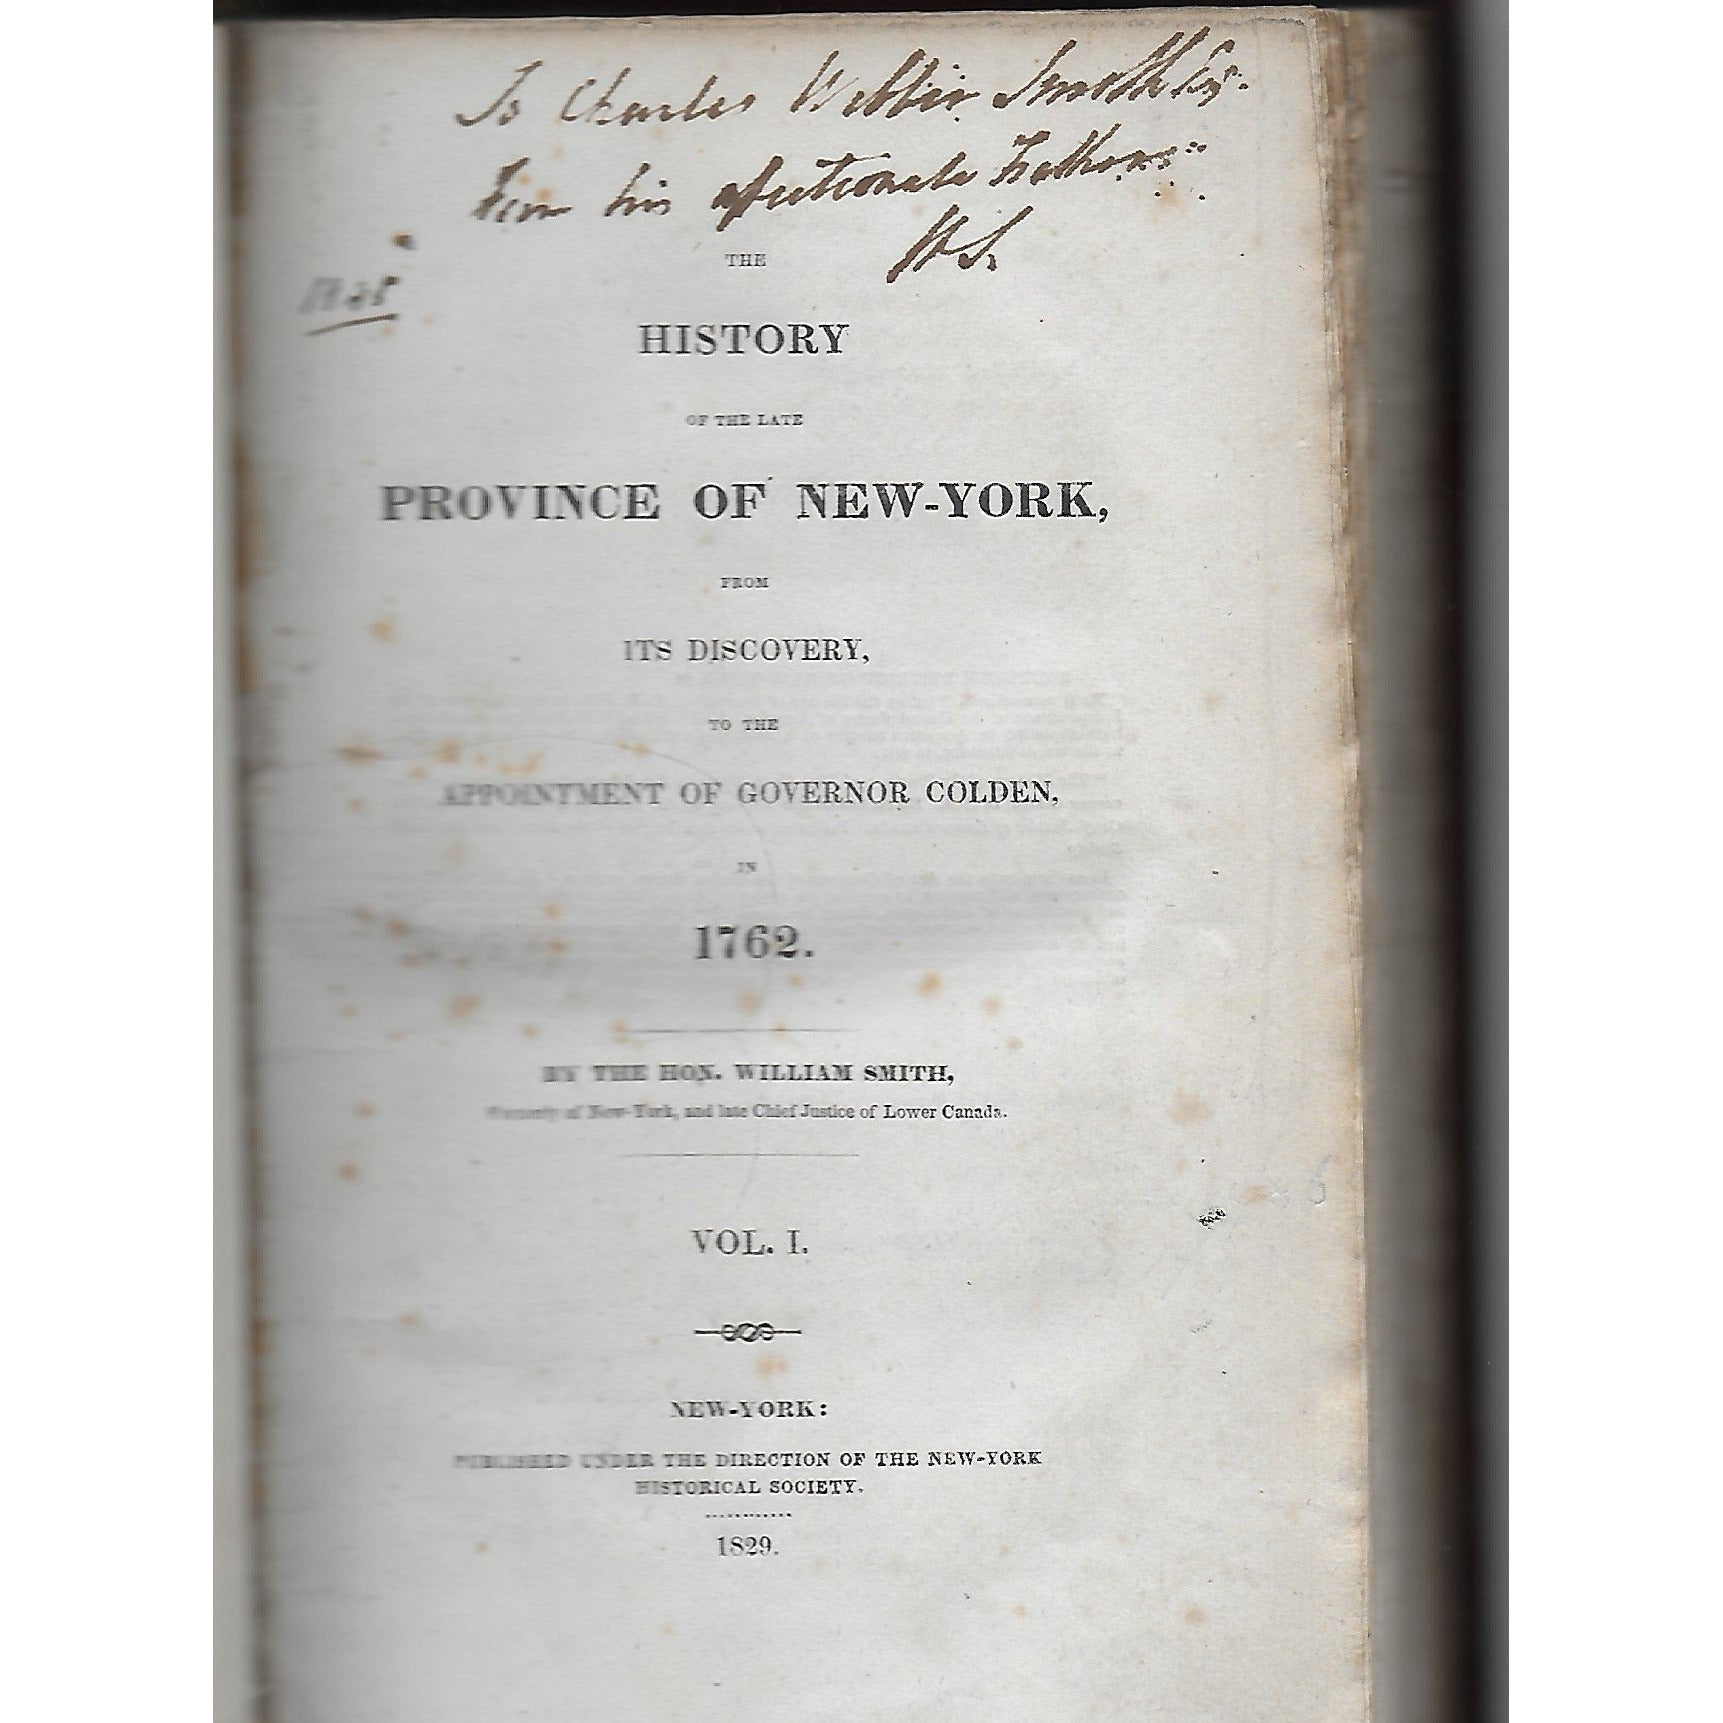 The History of the late Province of New-York, from its Discovery, to the appointment of Governor Colden, in 1762.